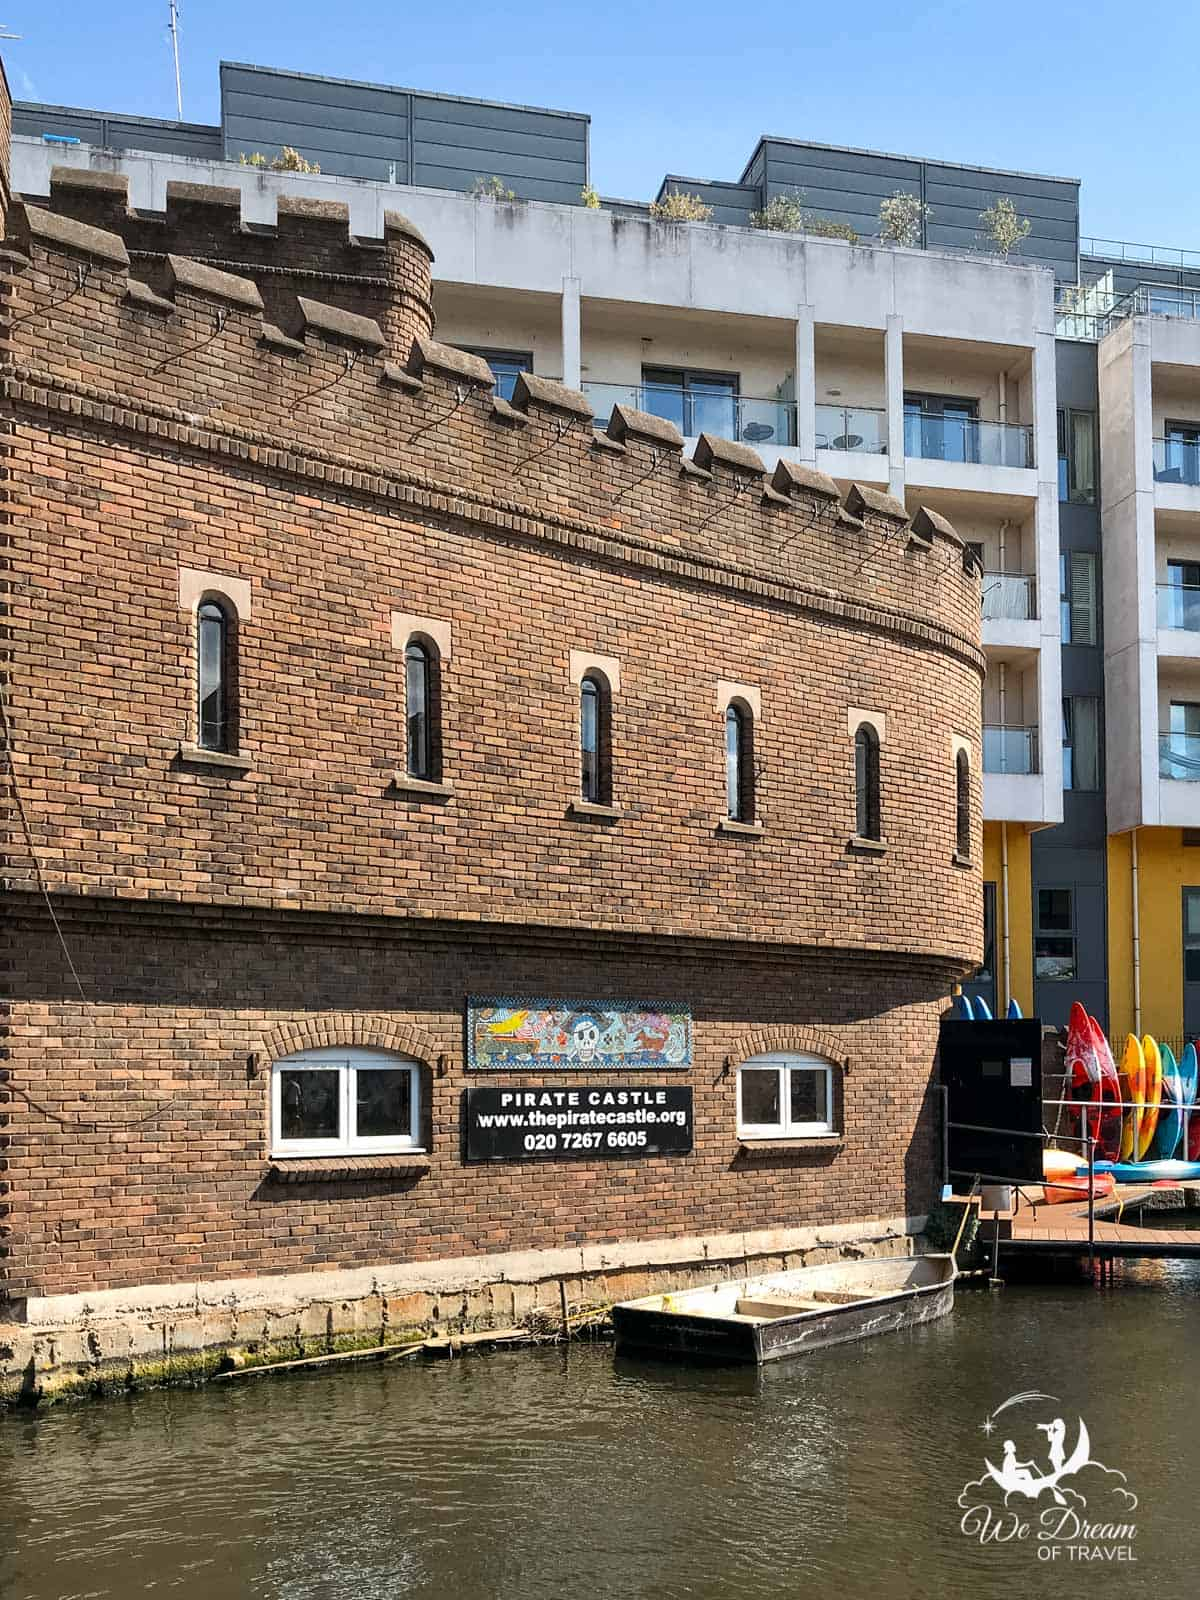 The Pirate Castle on Regent's Canal